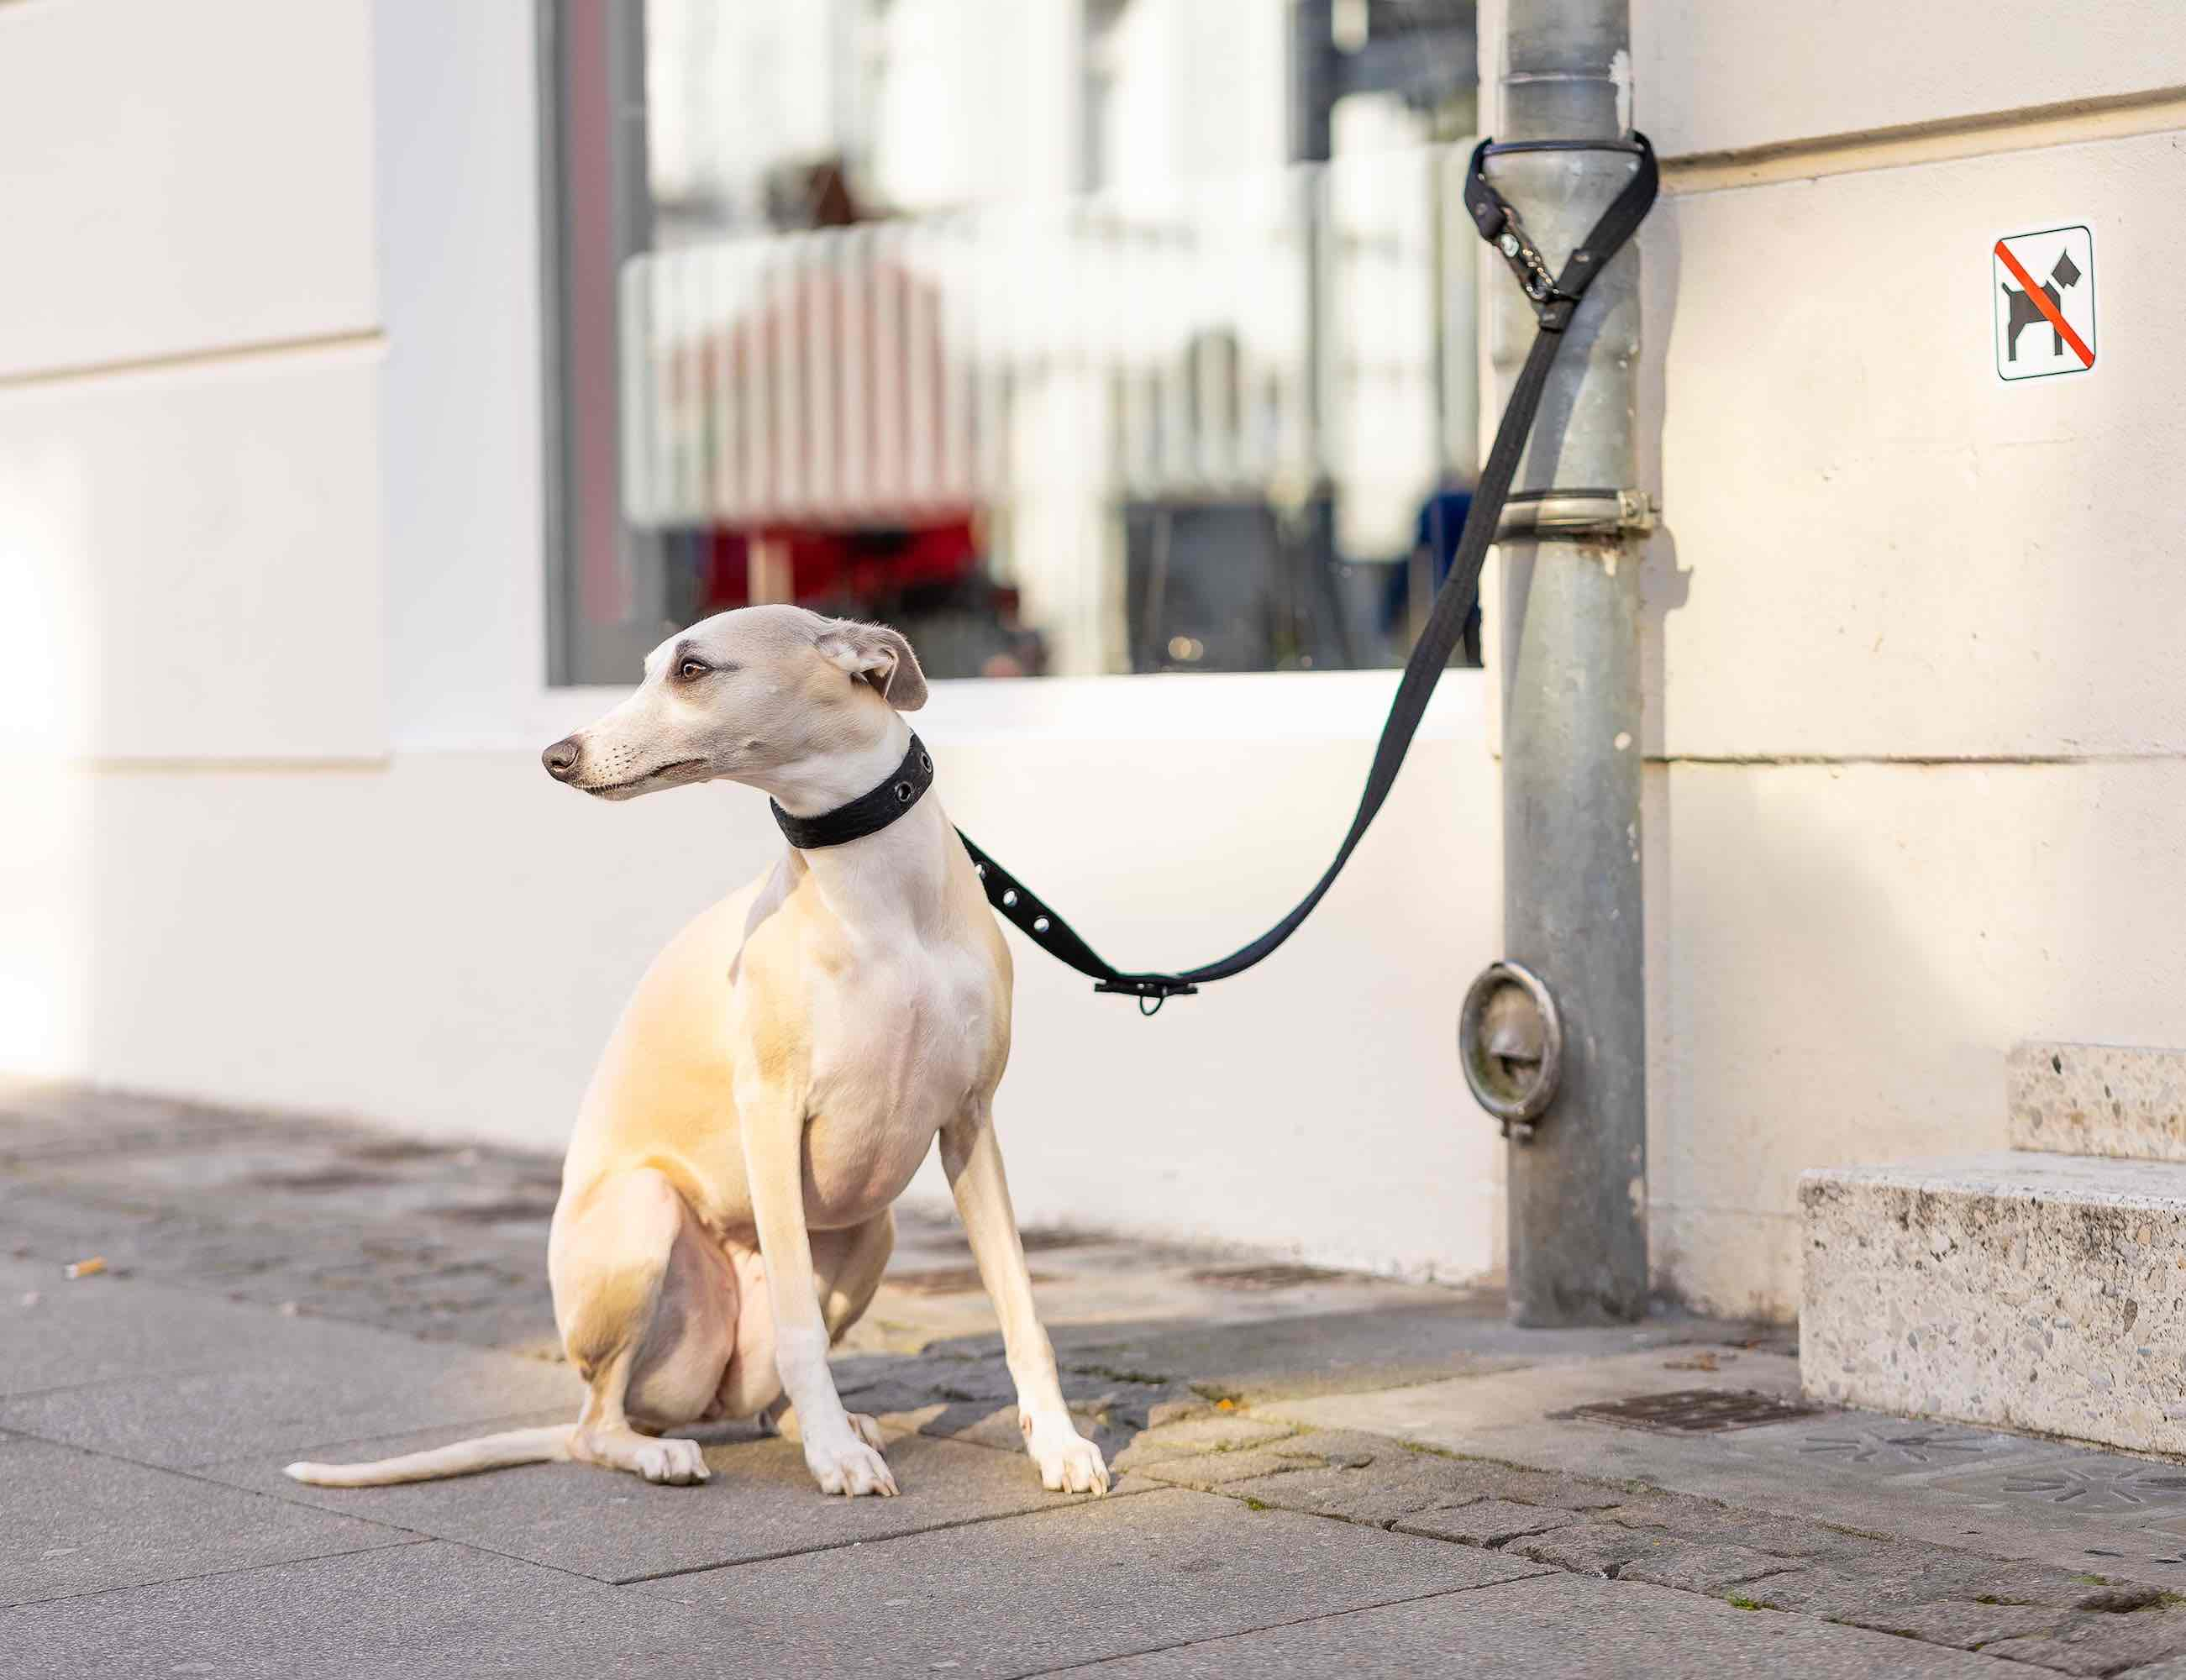 LOCK DOG Theft-proof Locking Dog Leash features two locks